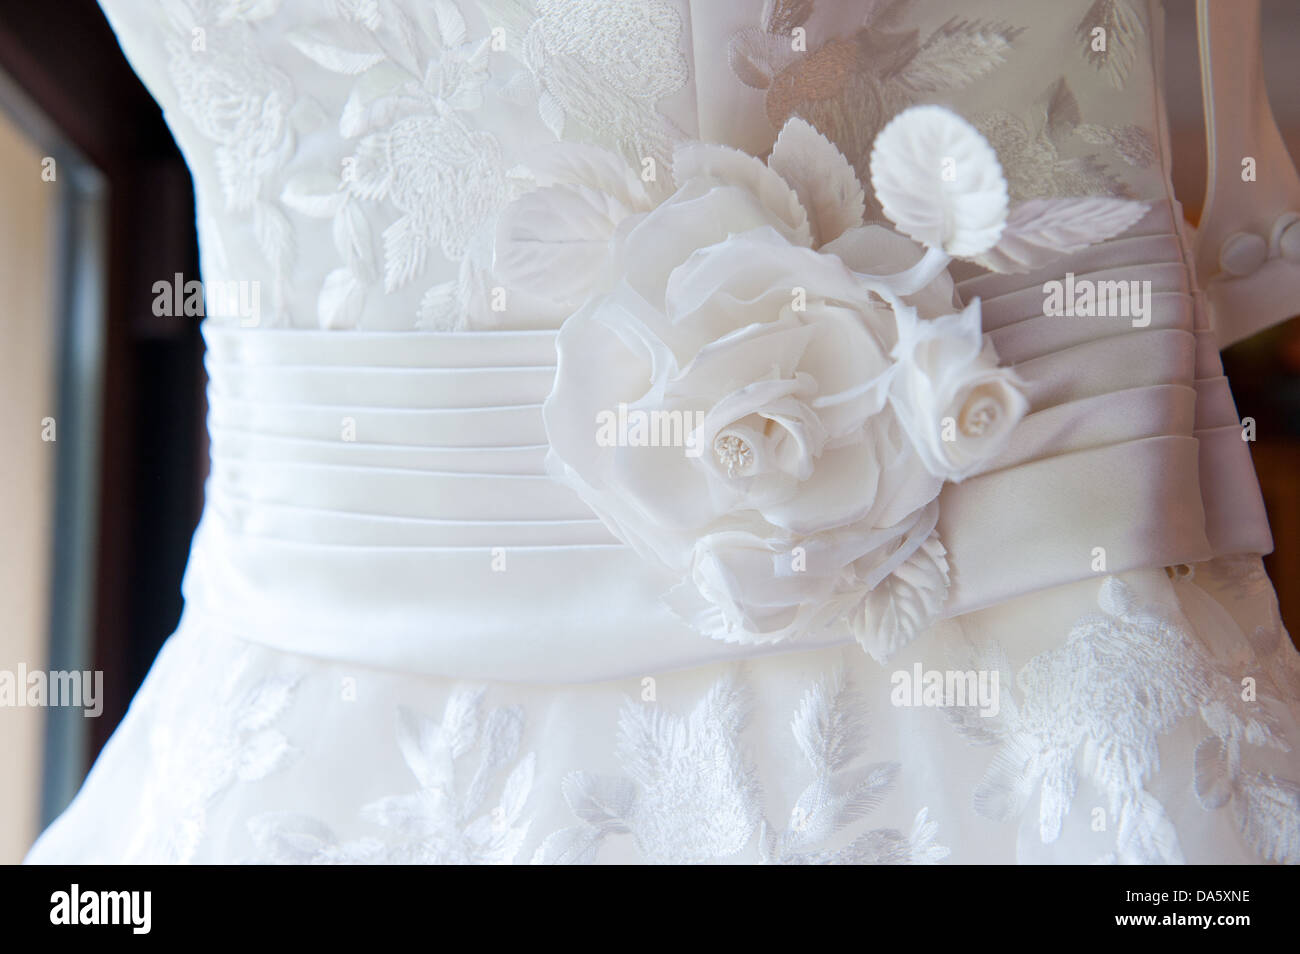 A Closeup Crop Of A Bride S Wedding Dress With Sash And Fabric